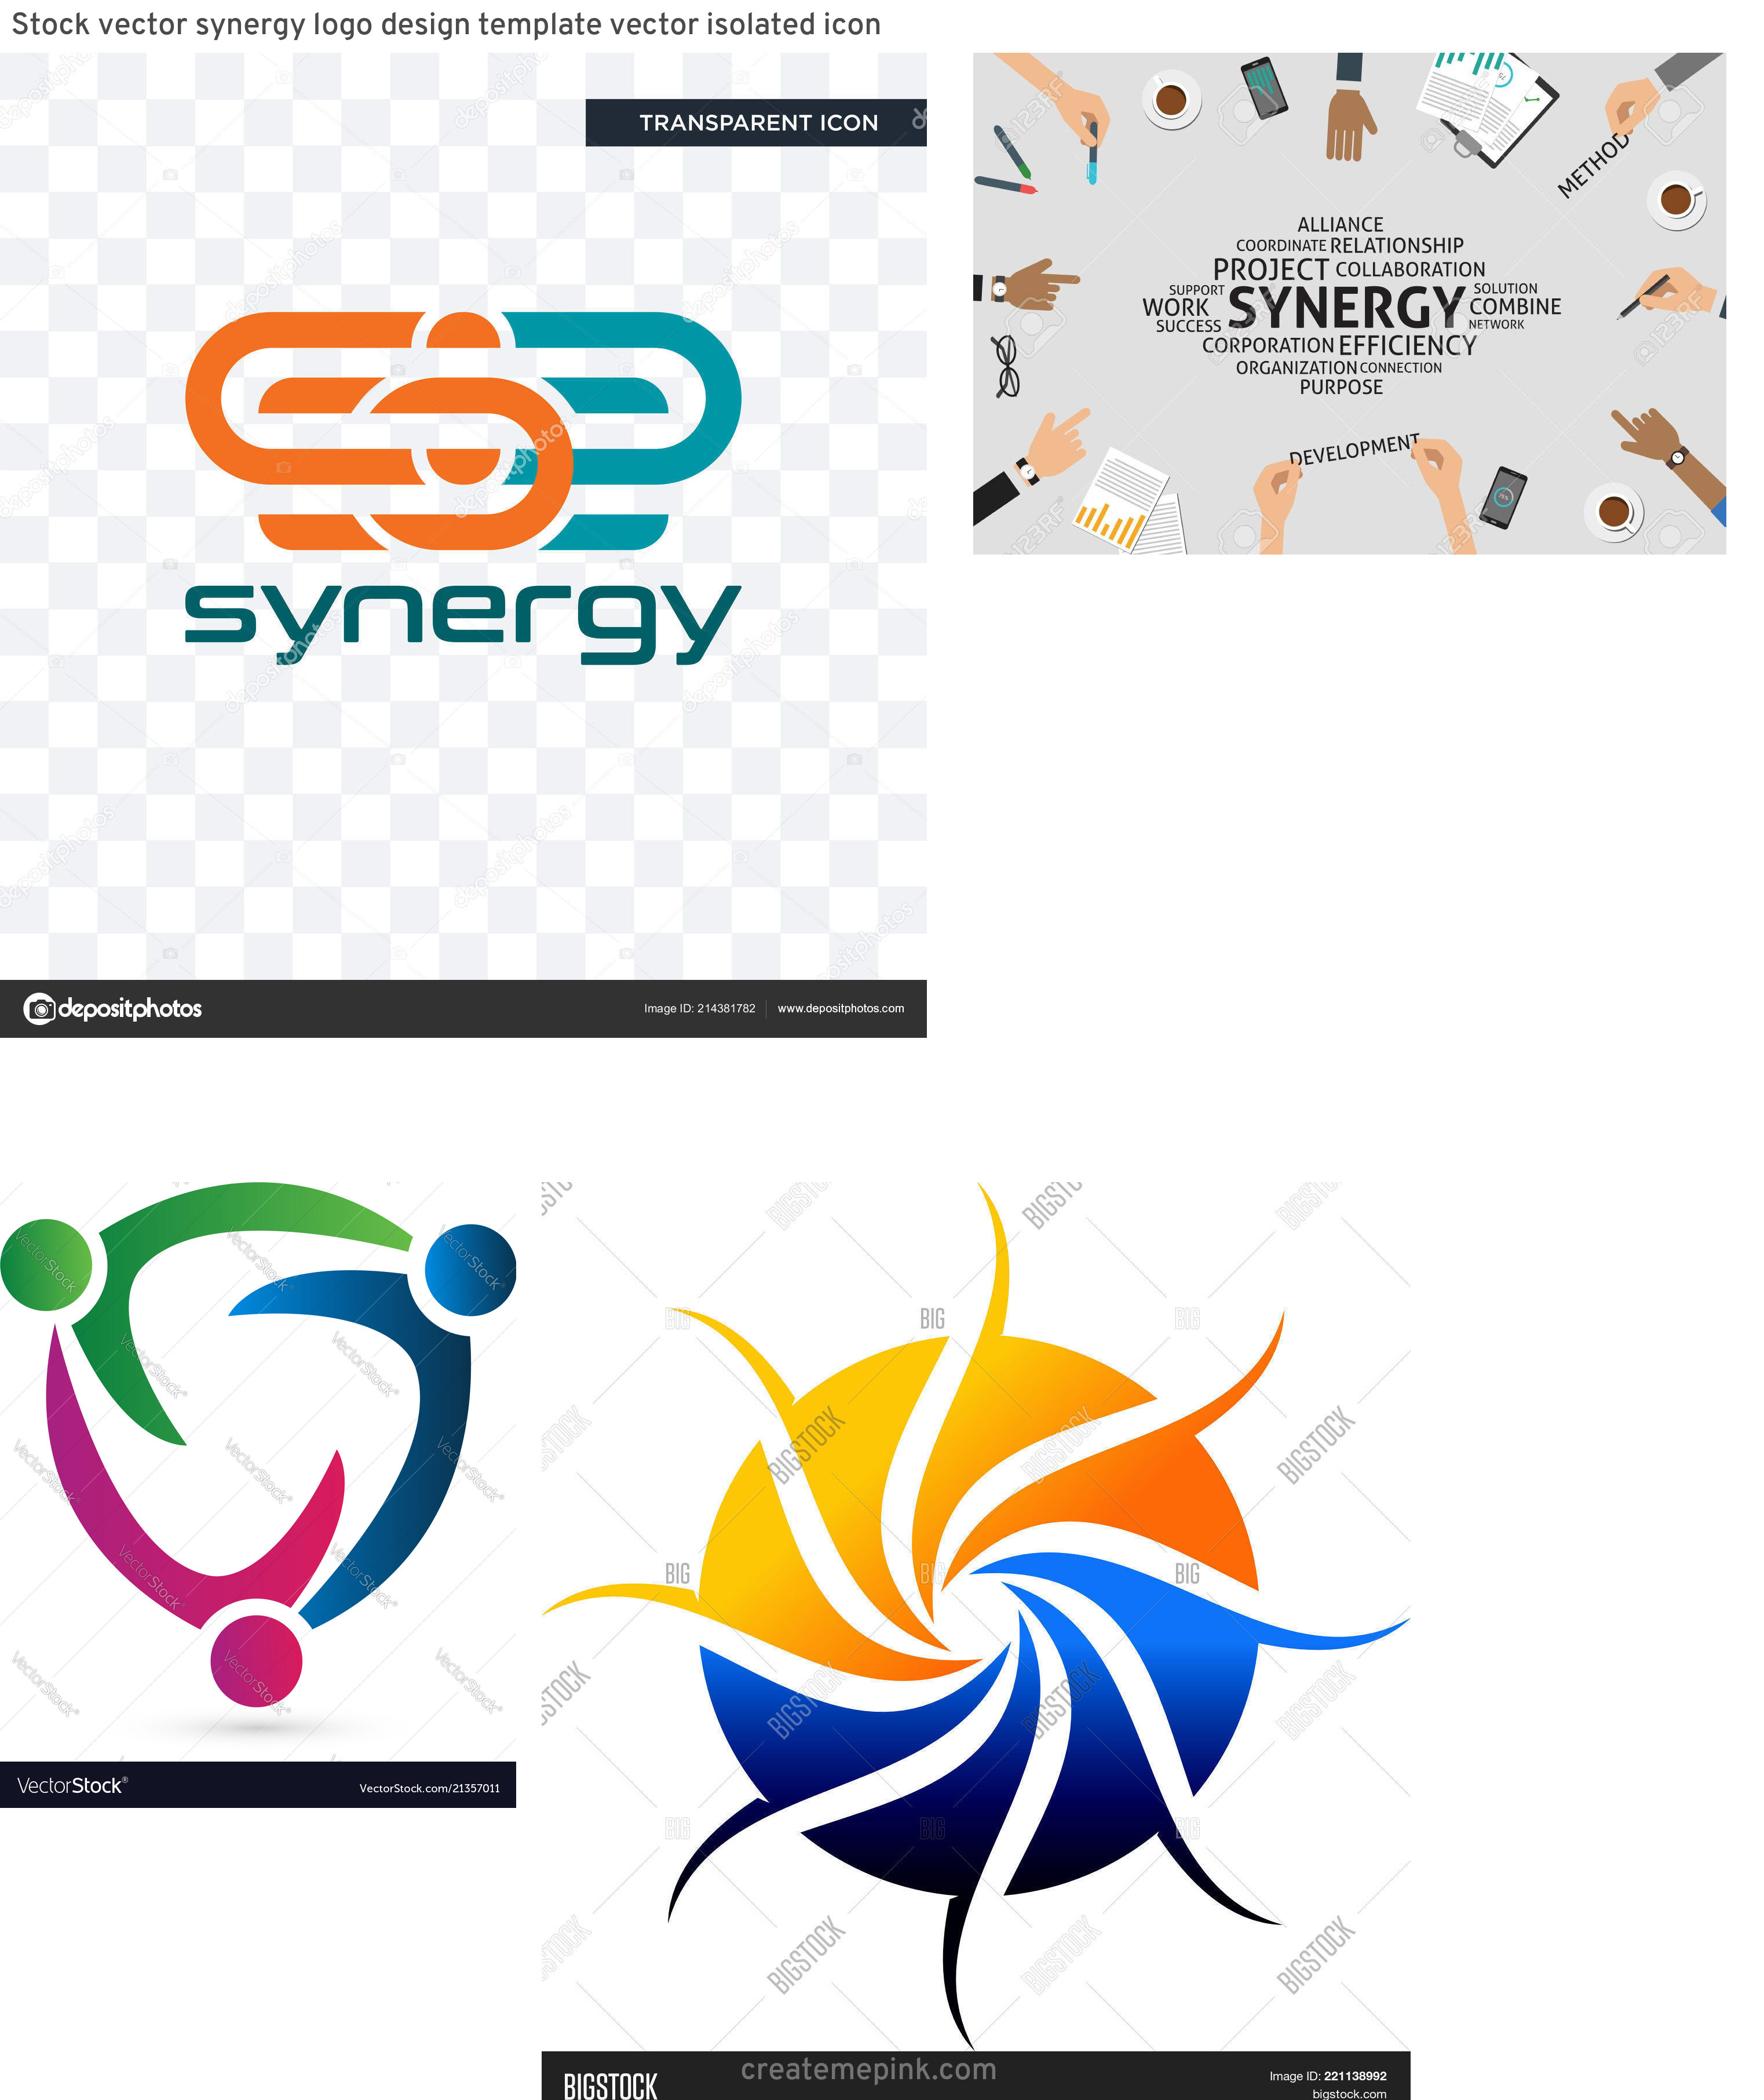 Vector Synergy: Stock Vector Synergy Logo Design Template Vector Isolated Icon